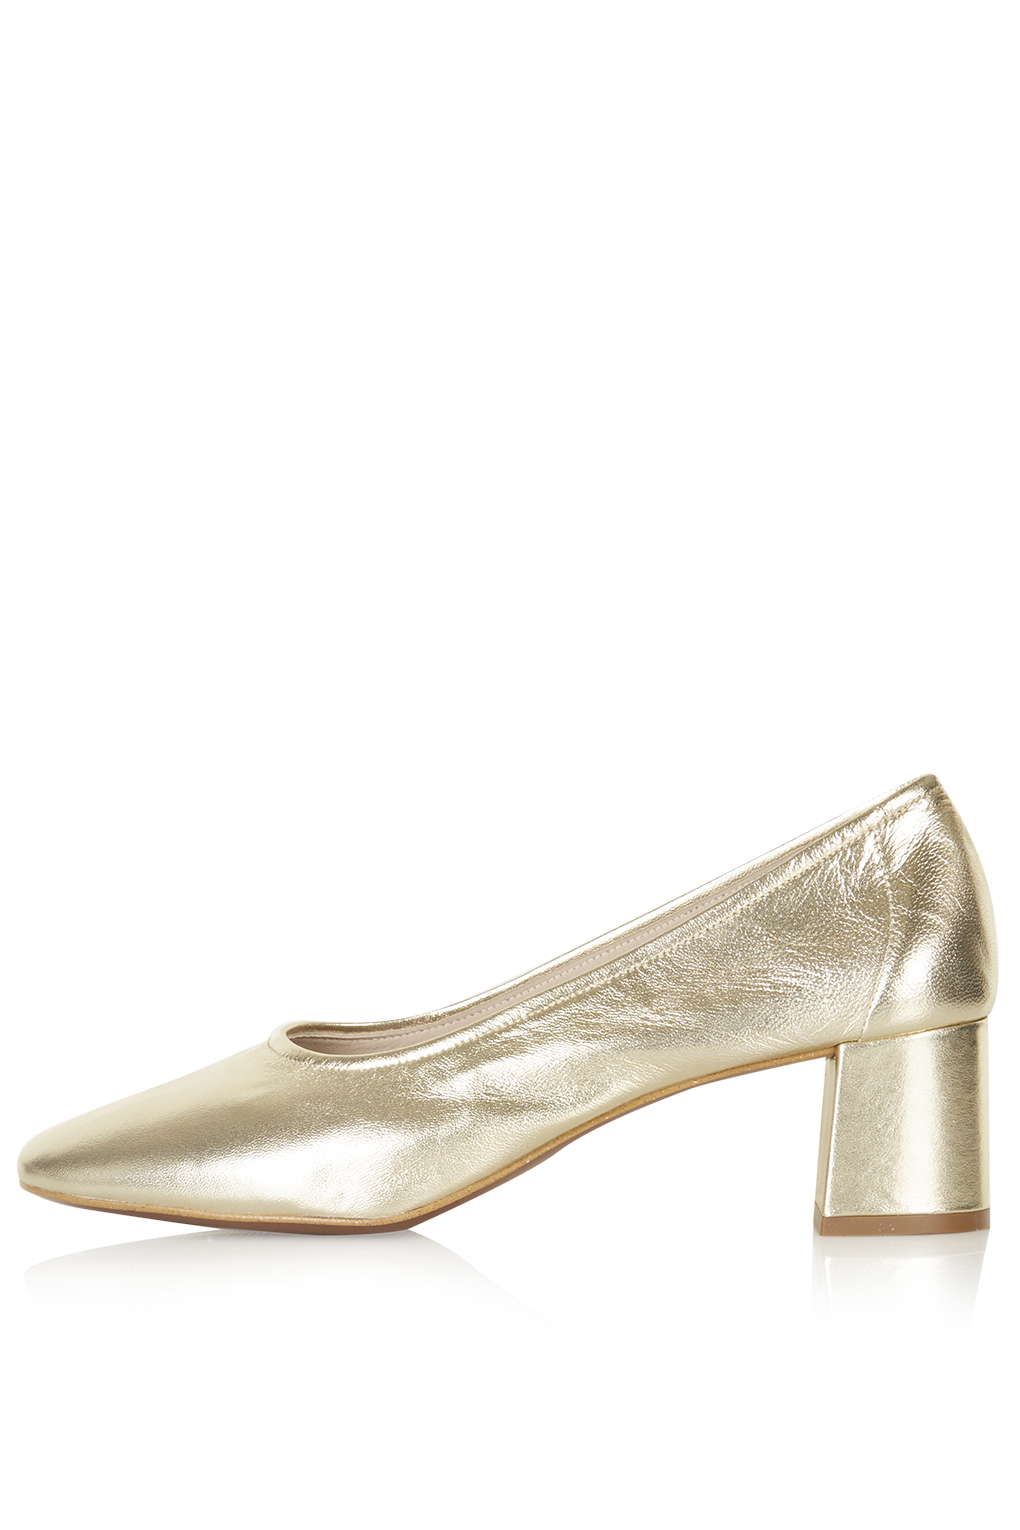 Gold retro shoe